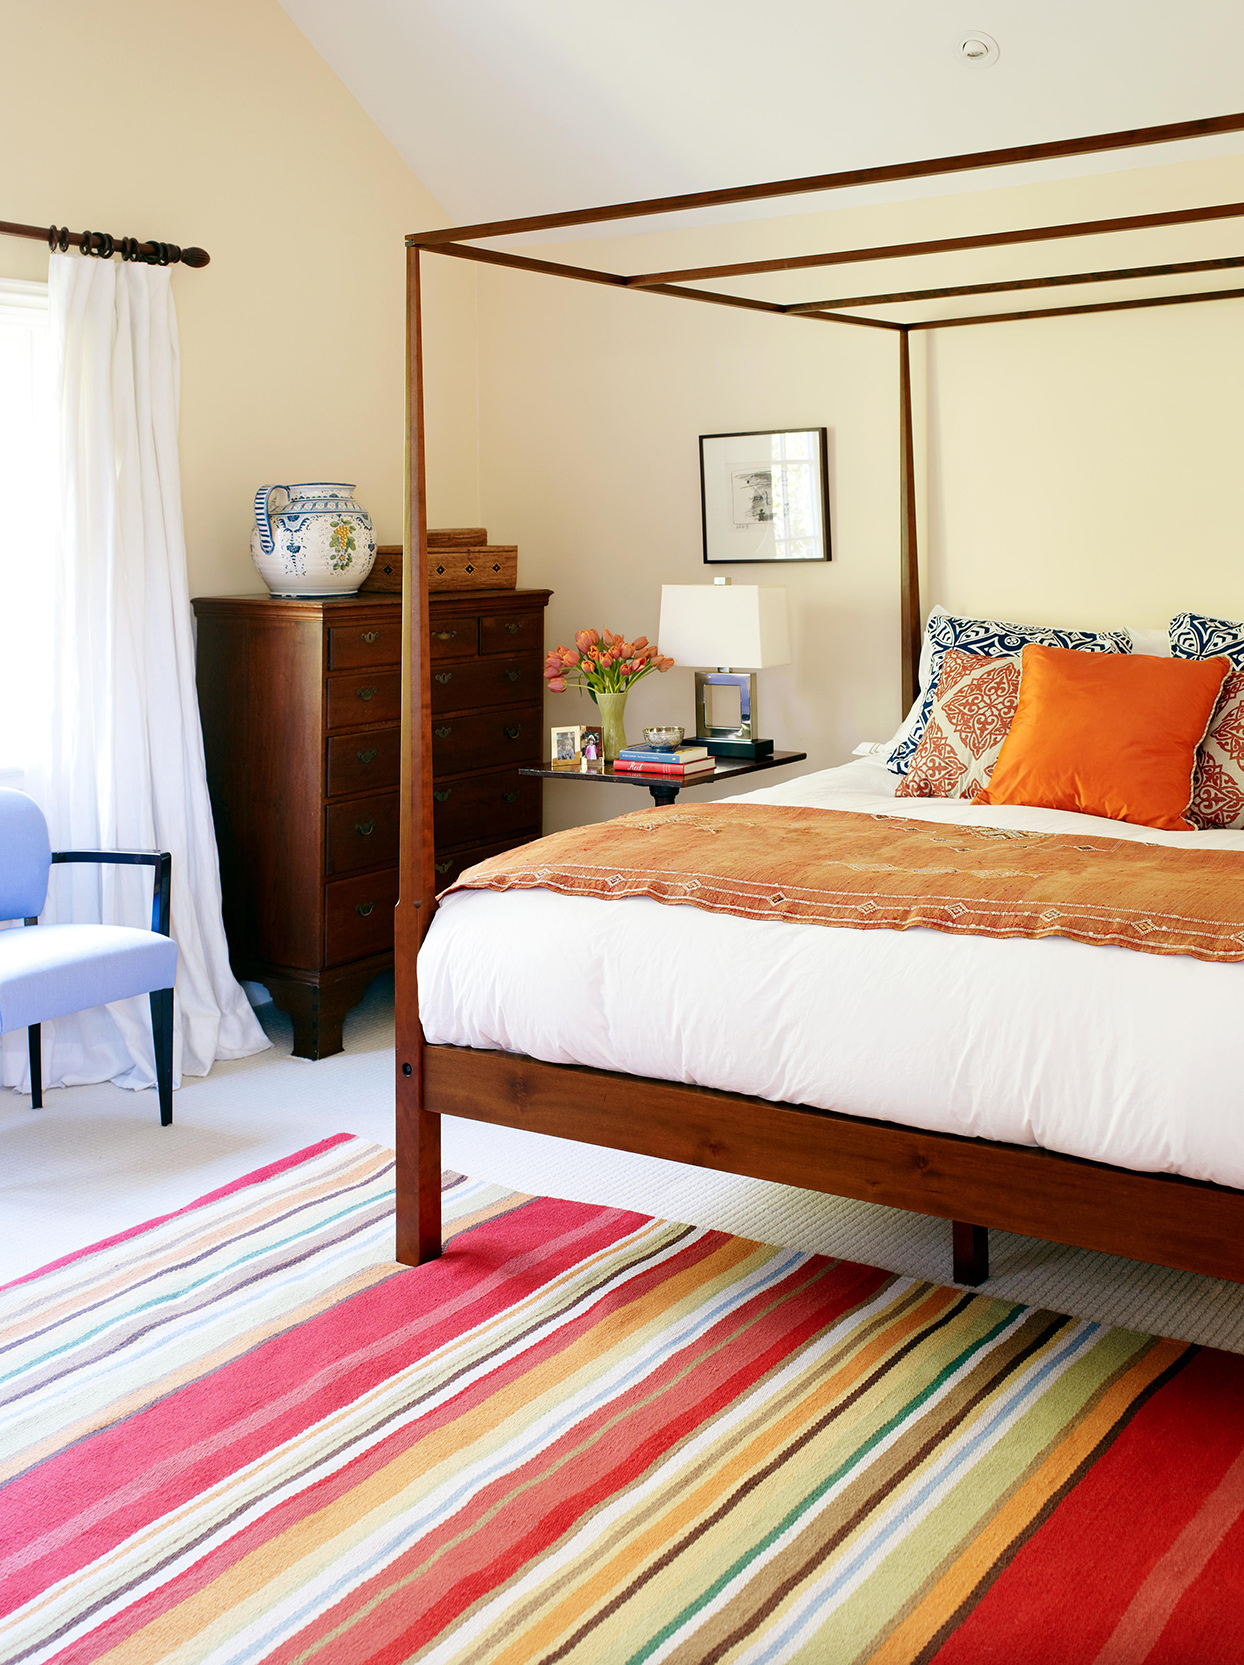 Fading Sun Yellow + Flame Orange bedroom with striped rug